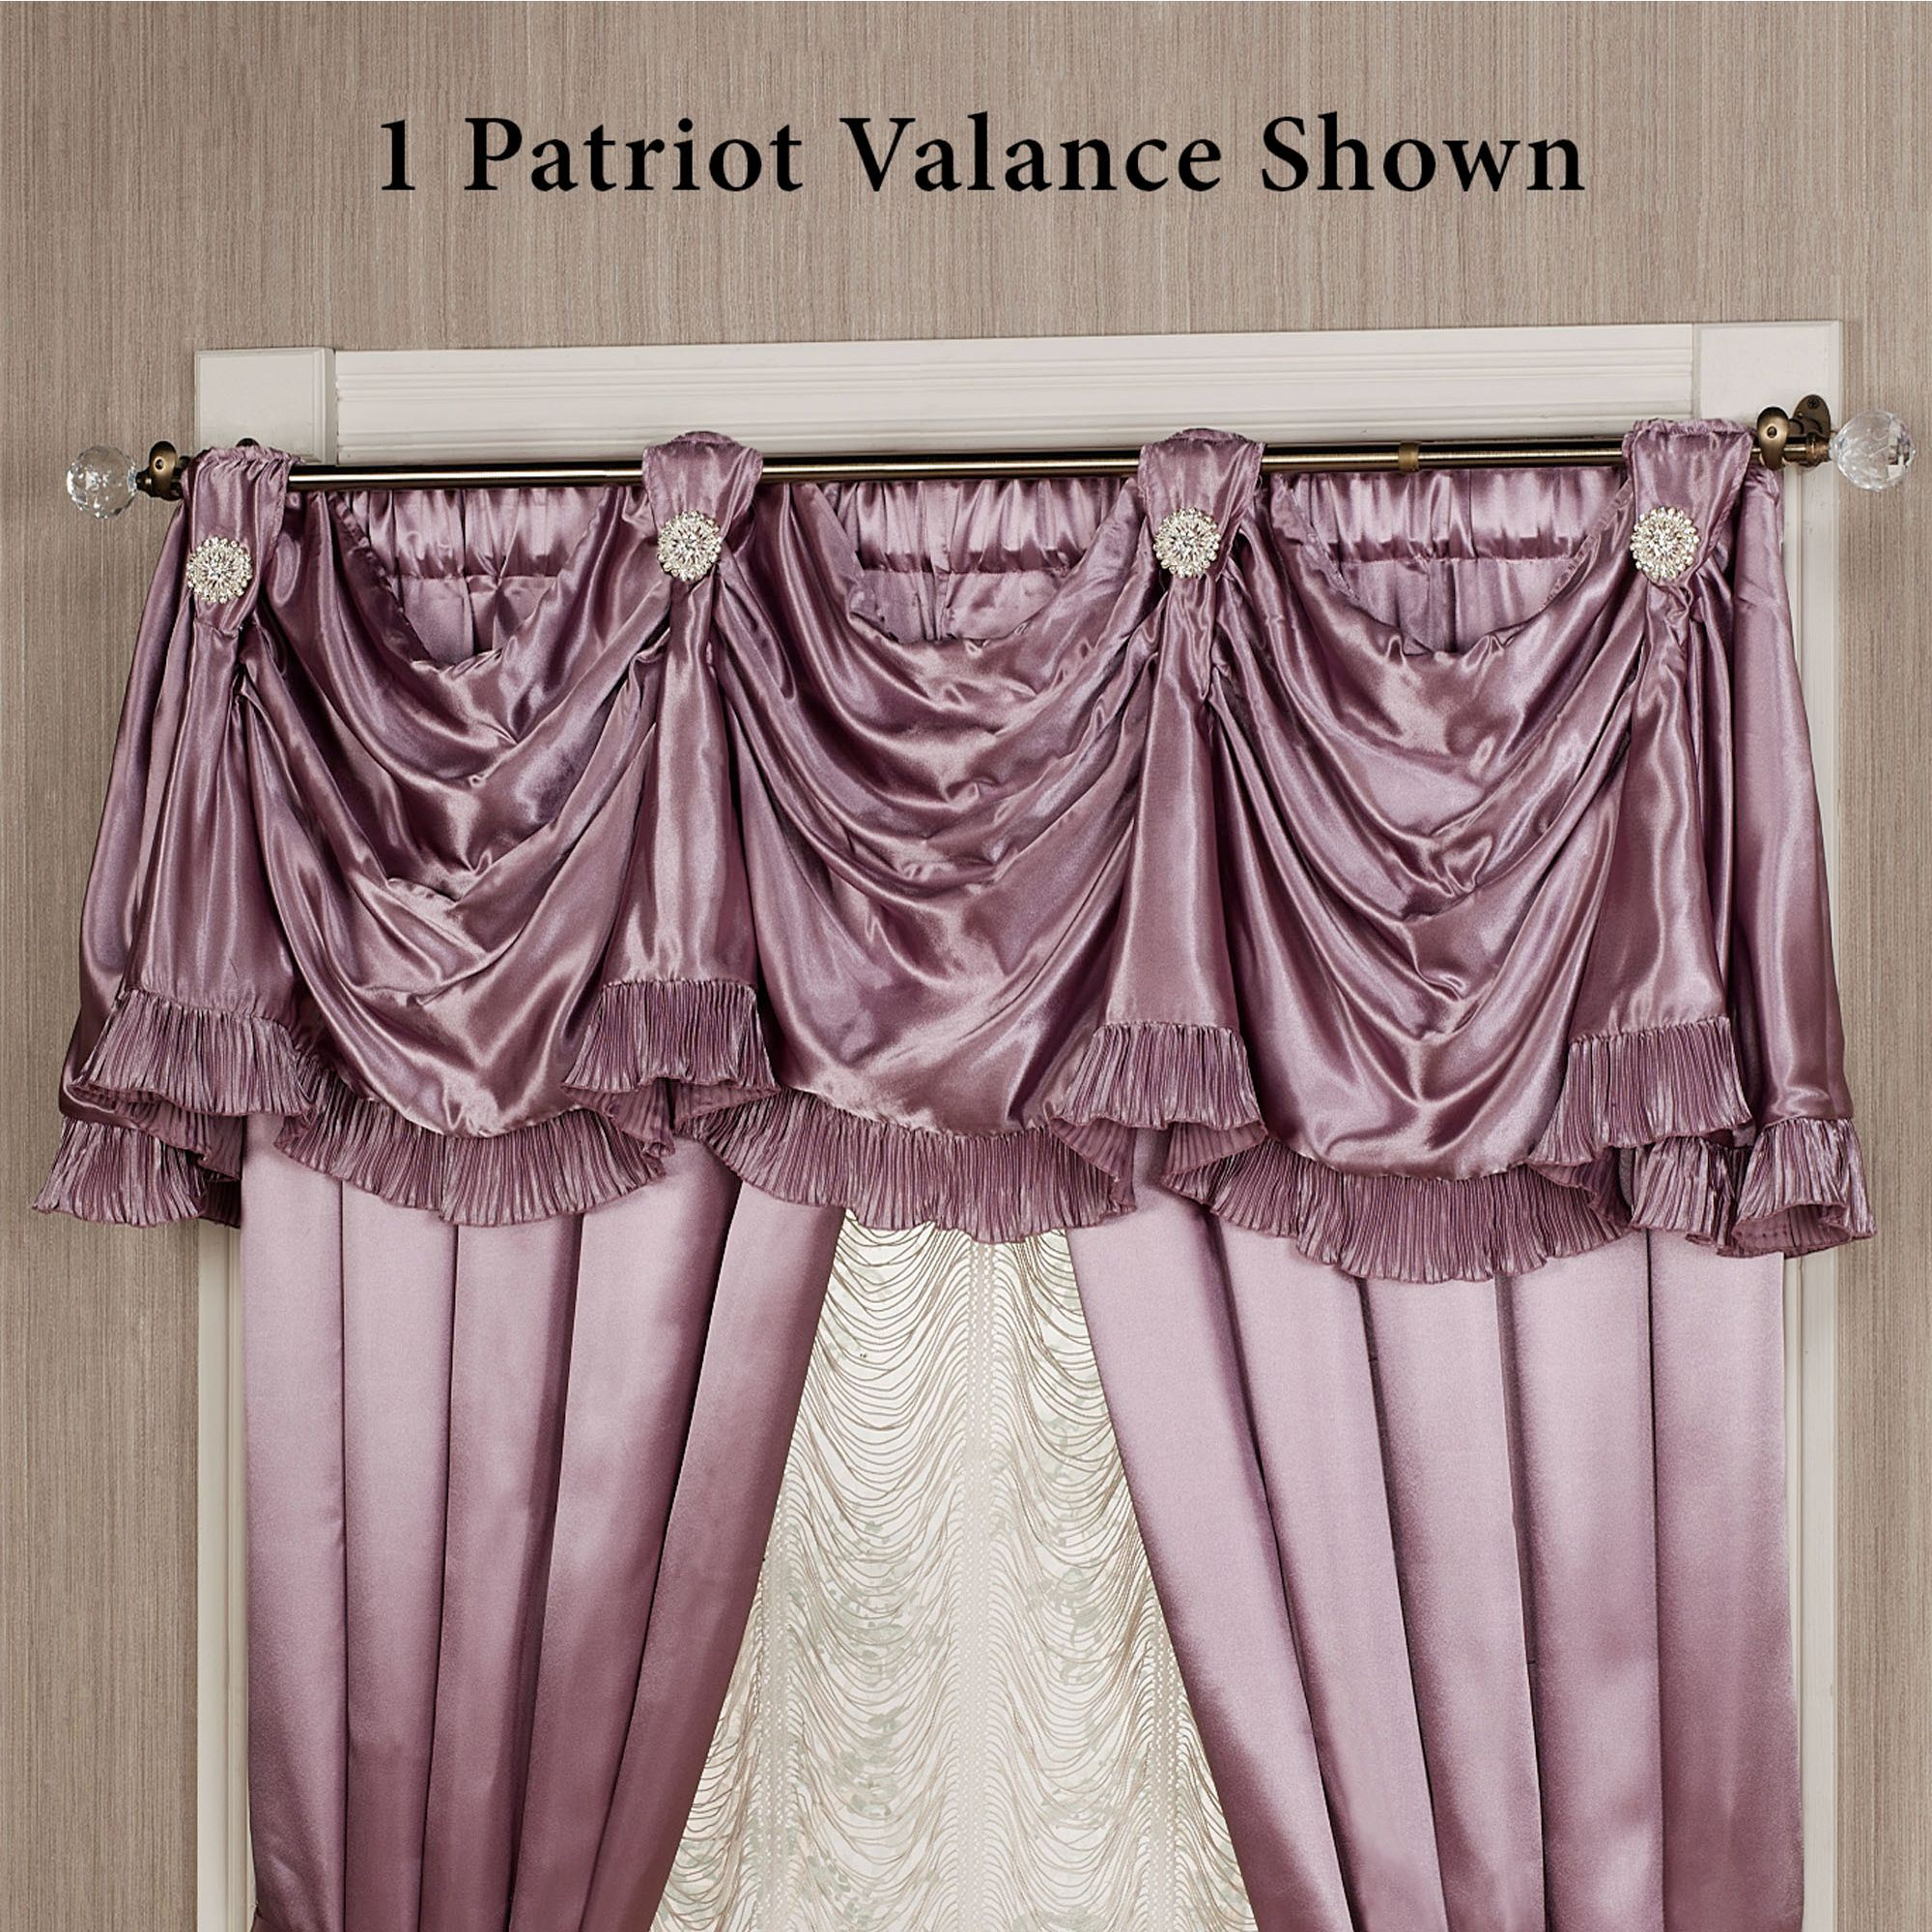 balloon purple designs window carousel valance solid lilac style rod pocket valances large